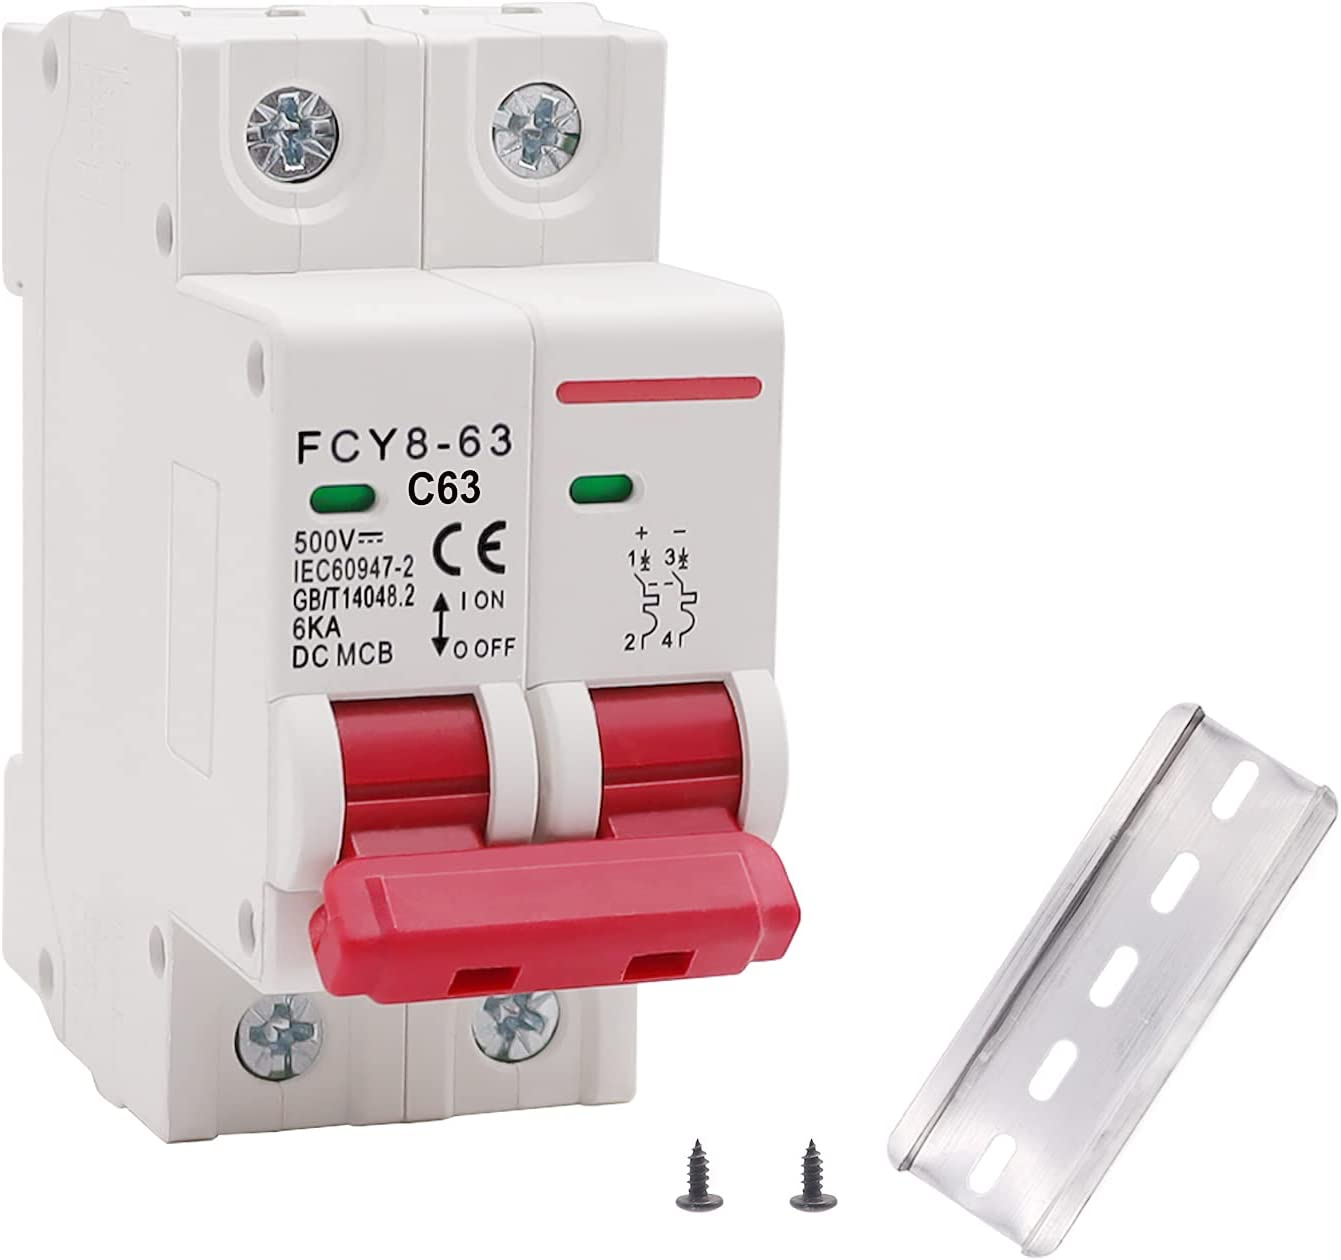 smseace Low-Voltage DC Miniature Circuit Breaker, 63A 2P DIN Rail Mounted Miniature Air Circuit Breaker, Suitable for Solar Panels Grid System.FCY8-63-C63-2P : Everything Else